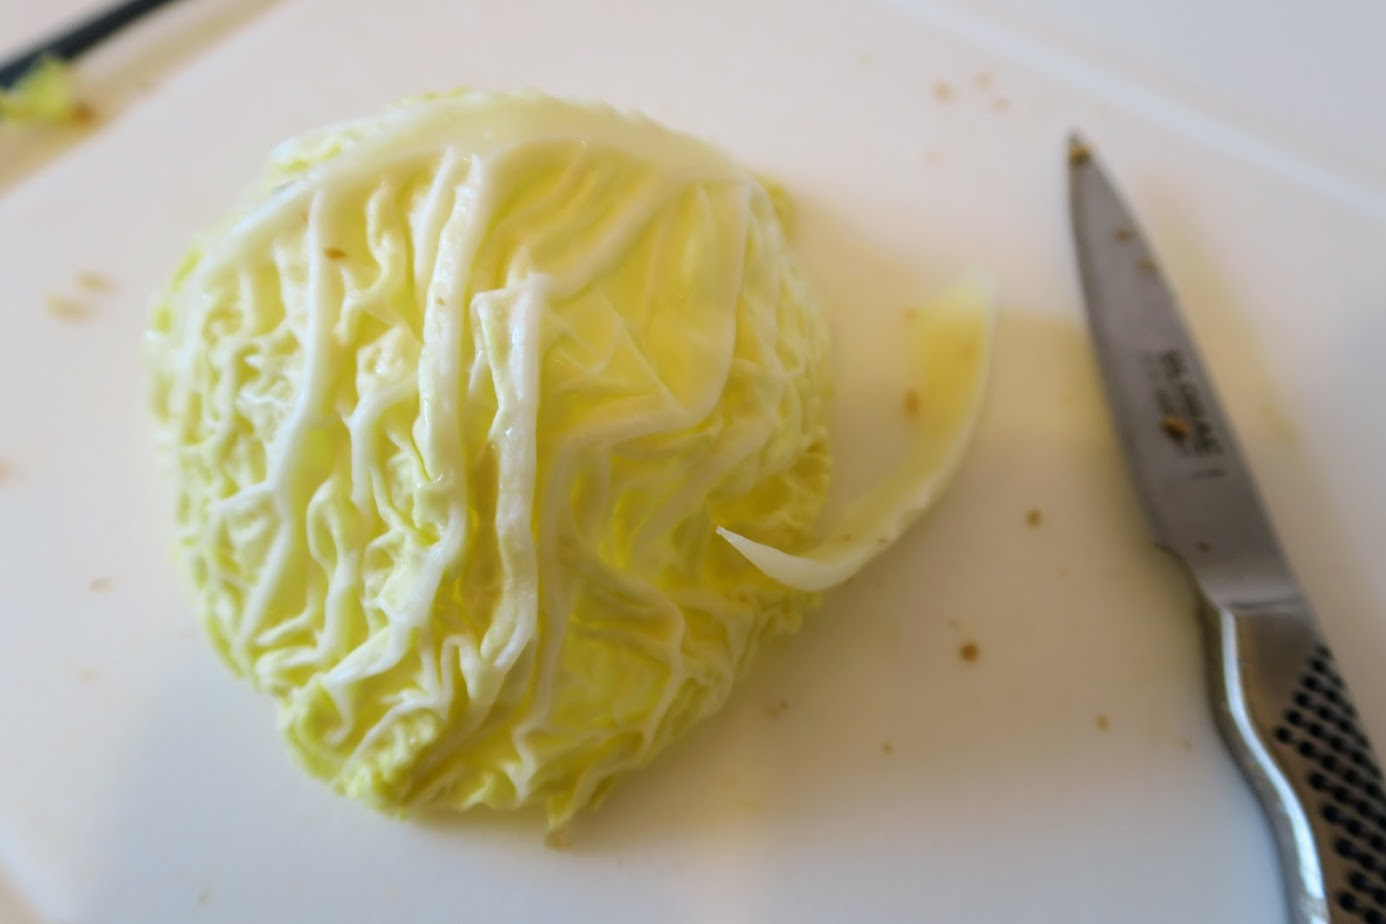 A small knife was used to trim away about 50% of the outer stem on a smaller cabbage leaf